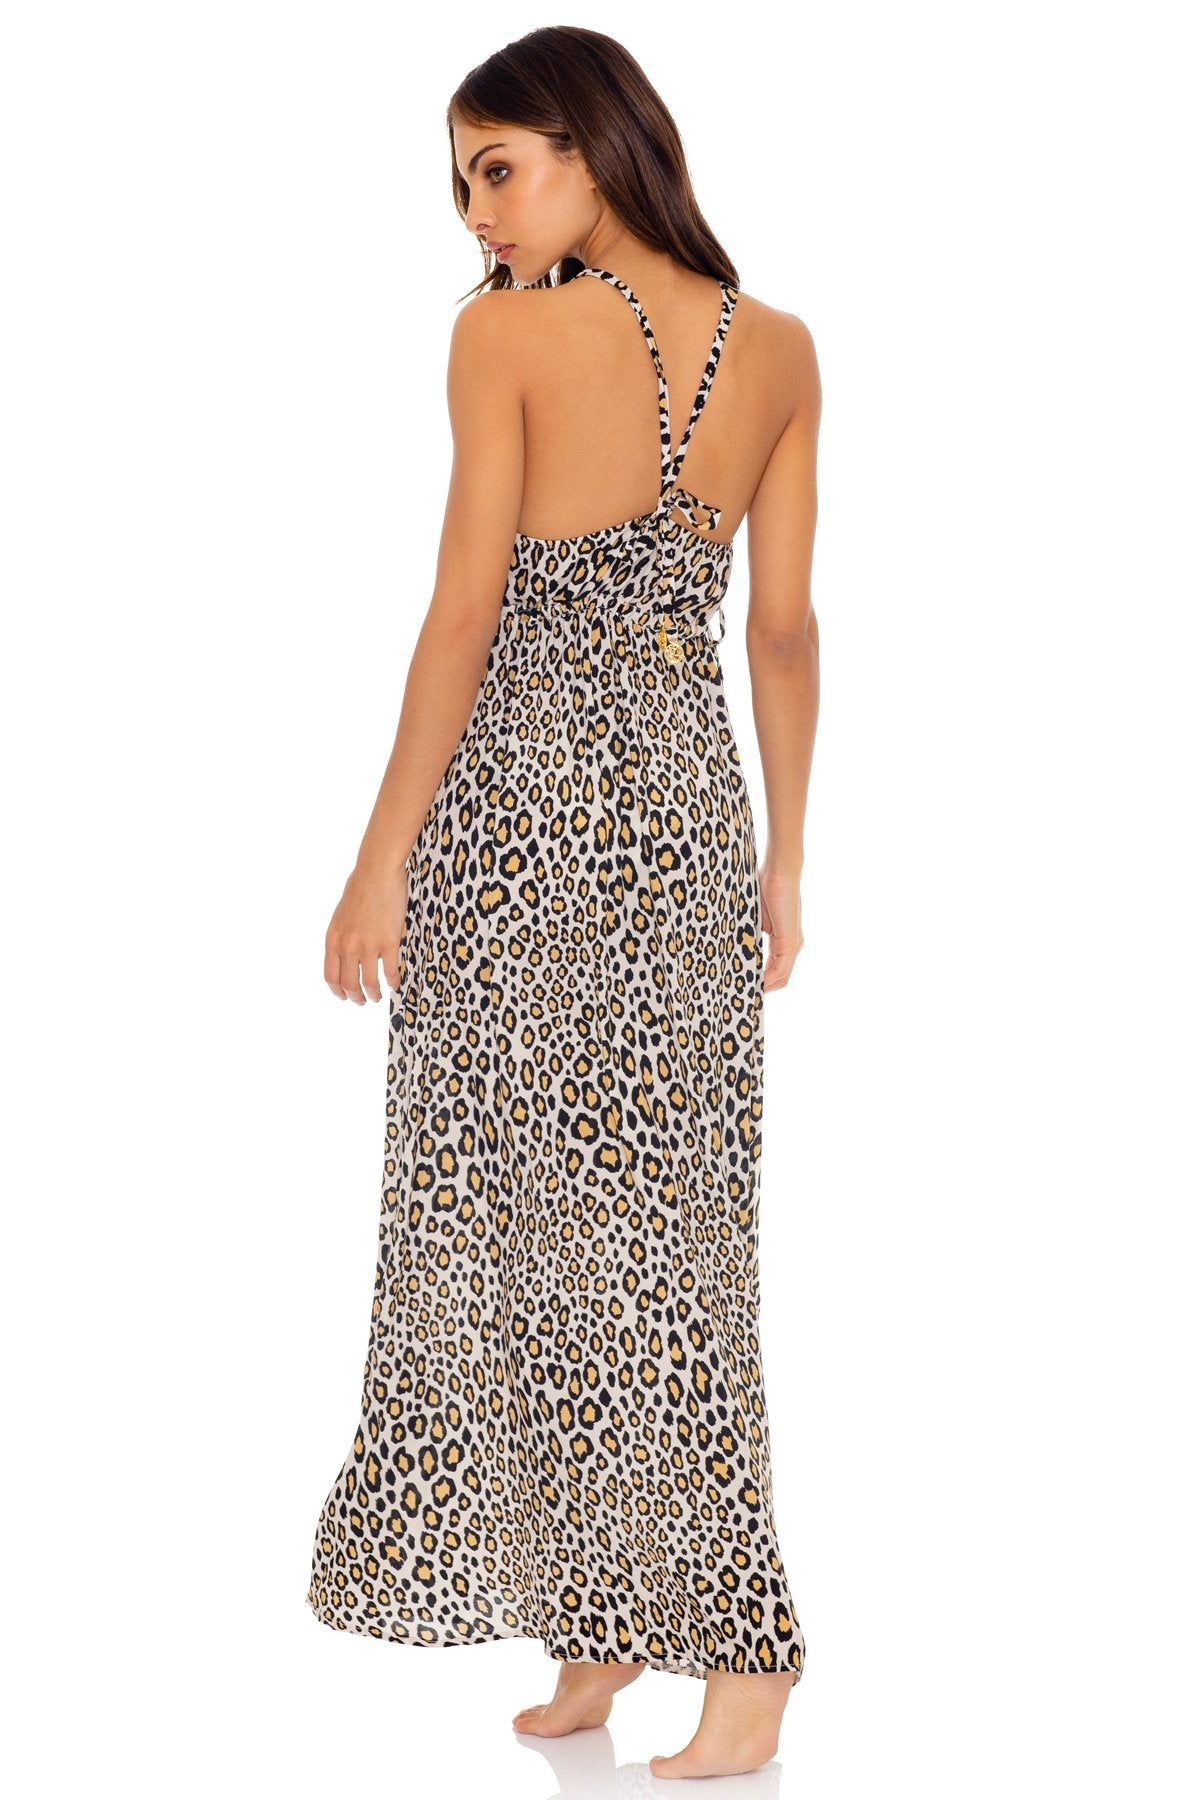 WILD SIDE - V Neck Long Dress • Multicolor